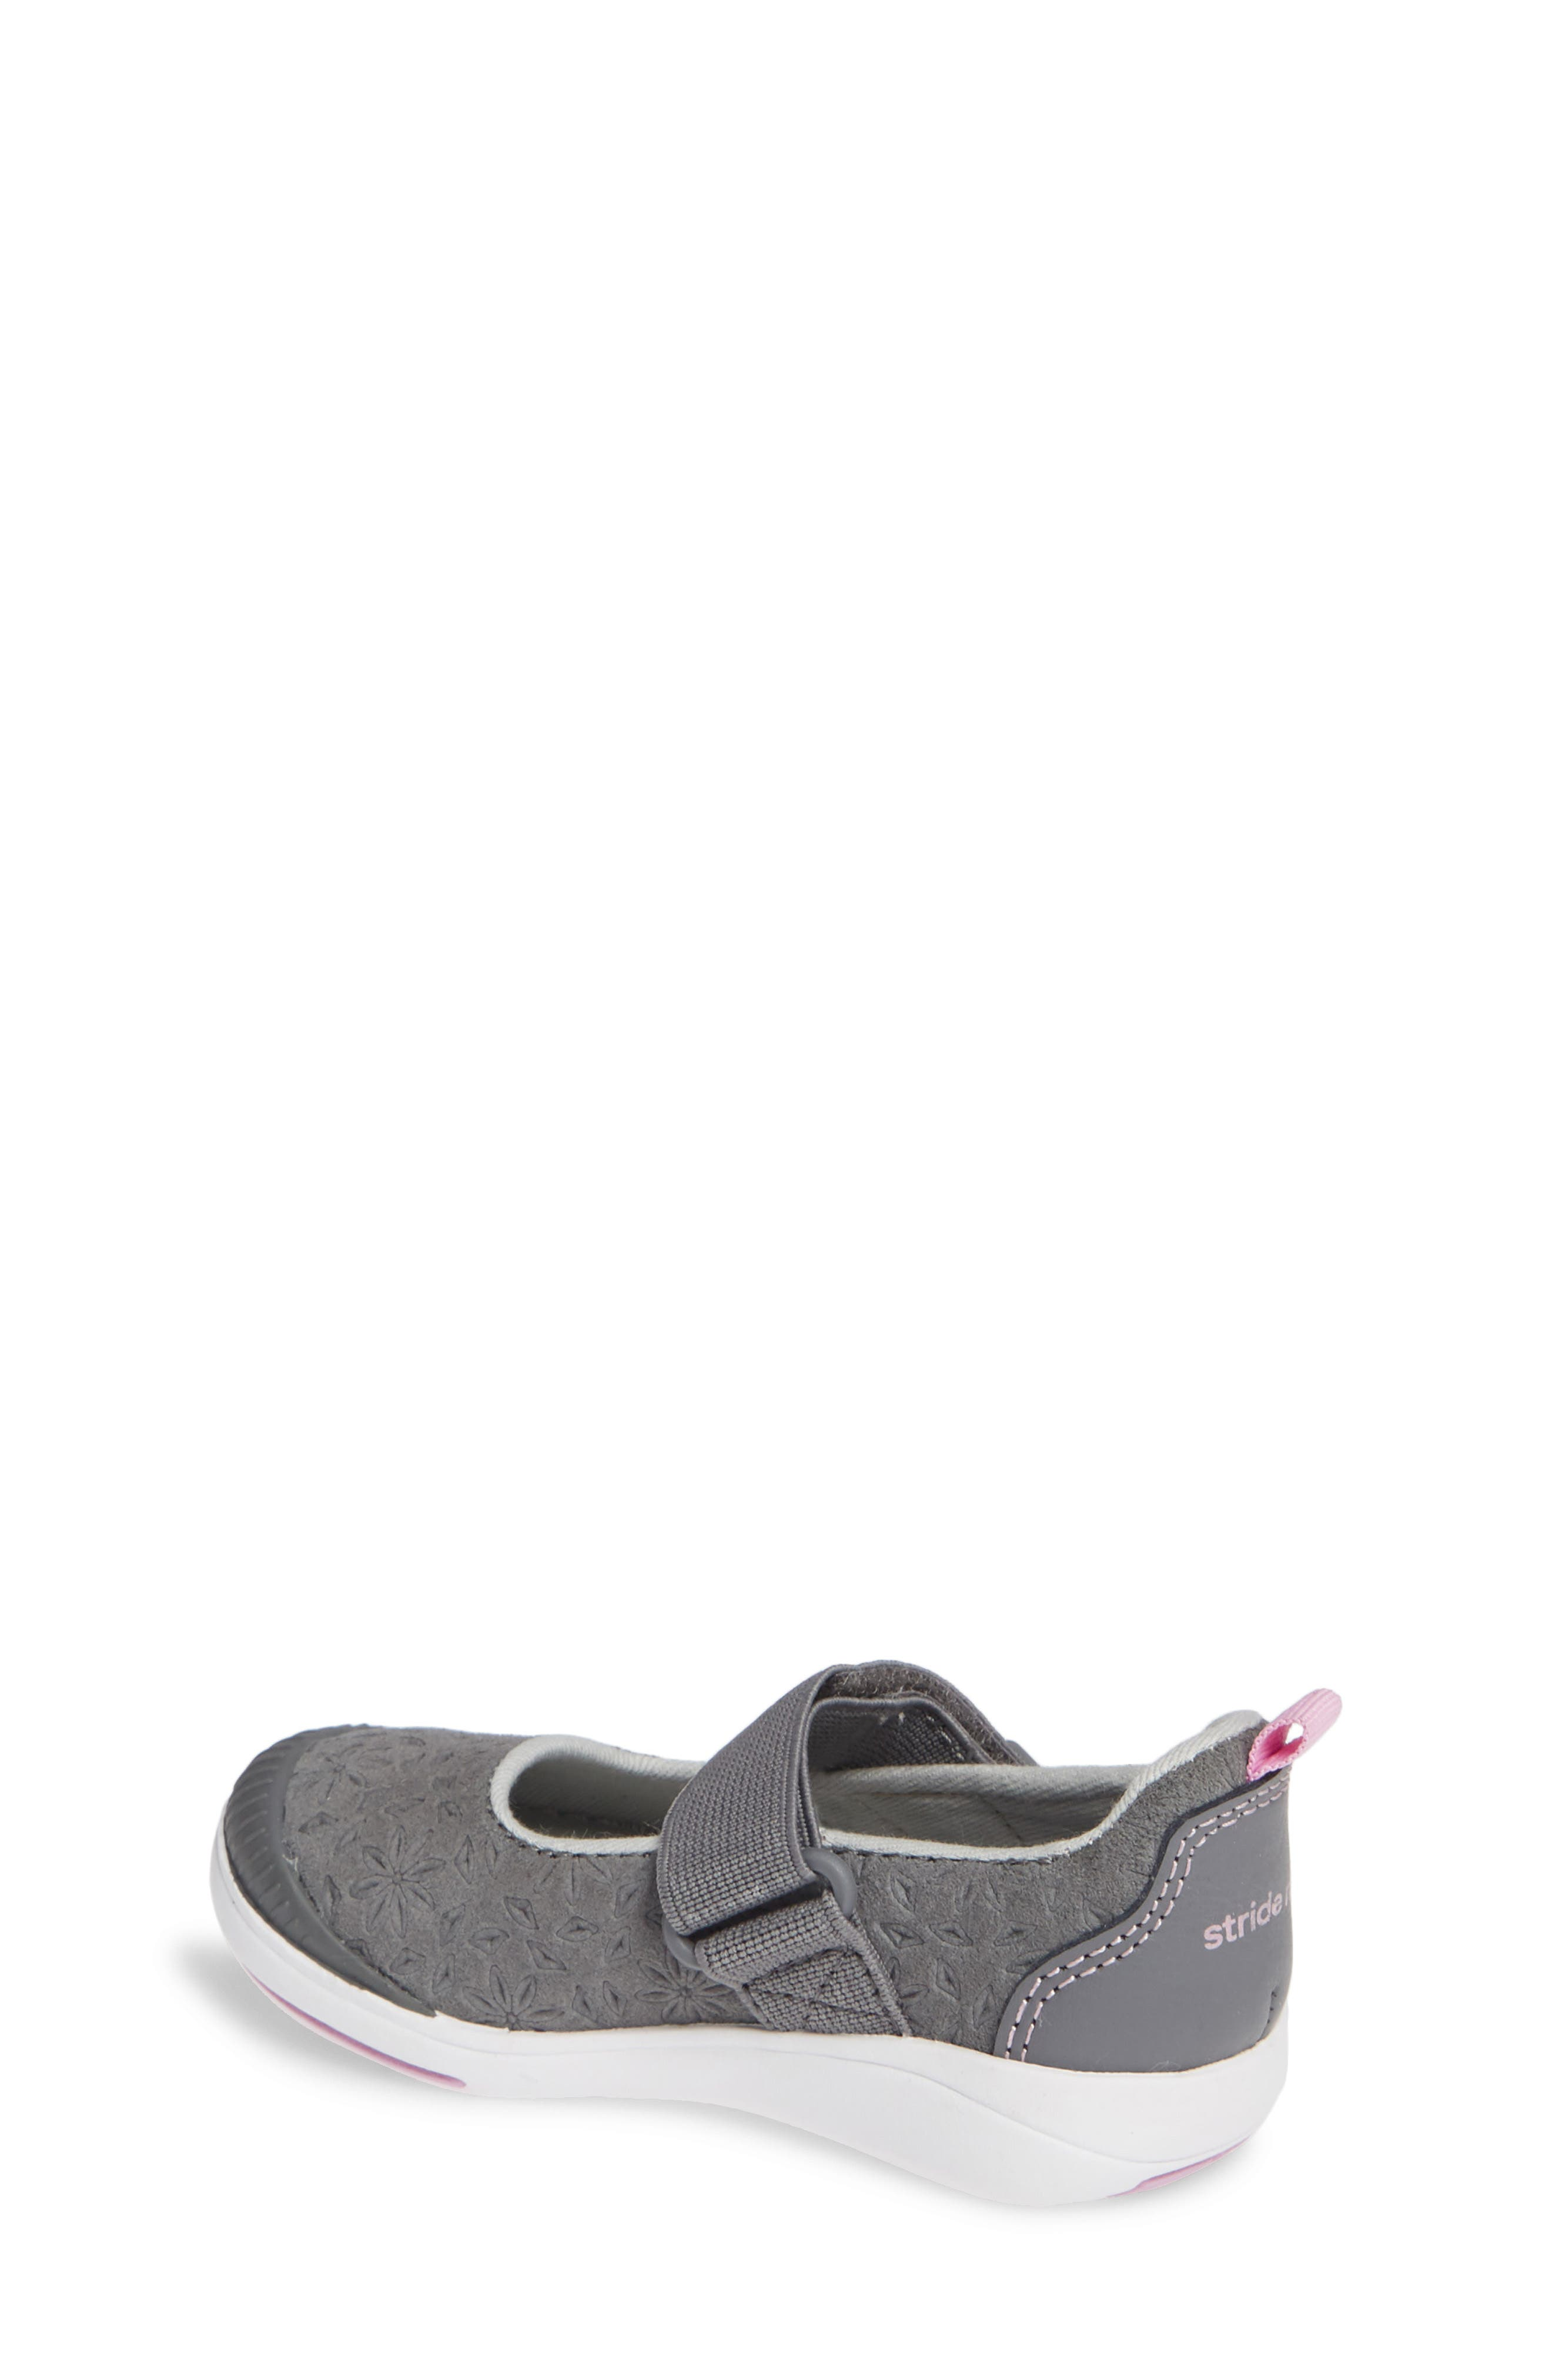 Made2Play<sup>®</sup> Lia Washable Mary Jane Sneaker,                             Alternate thumbnail 2, color,                             GREY